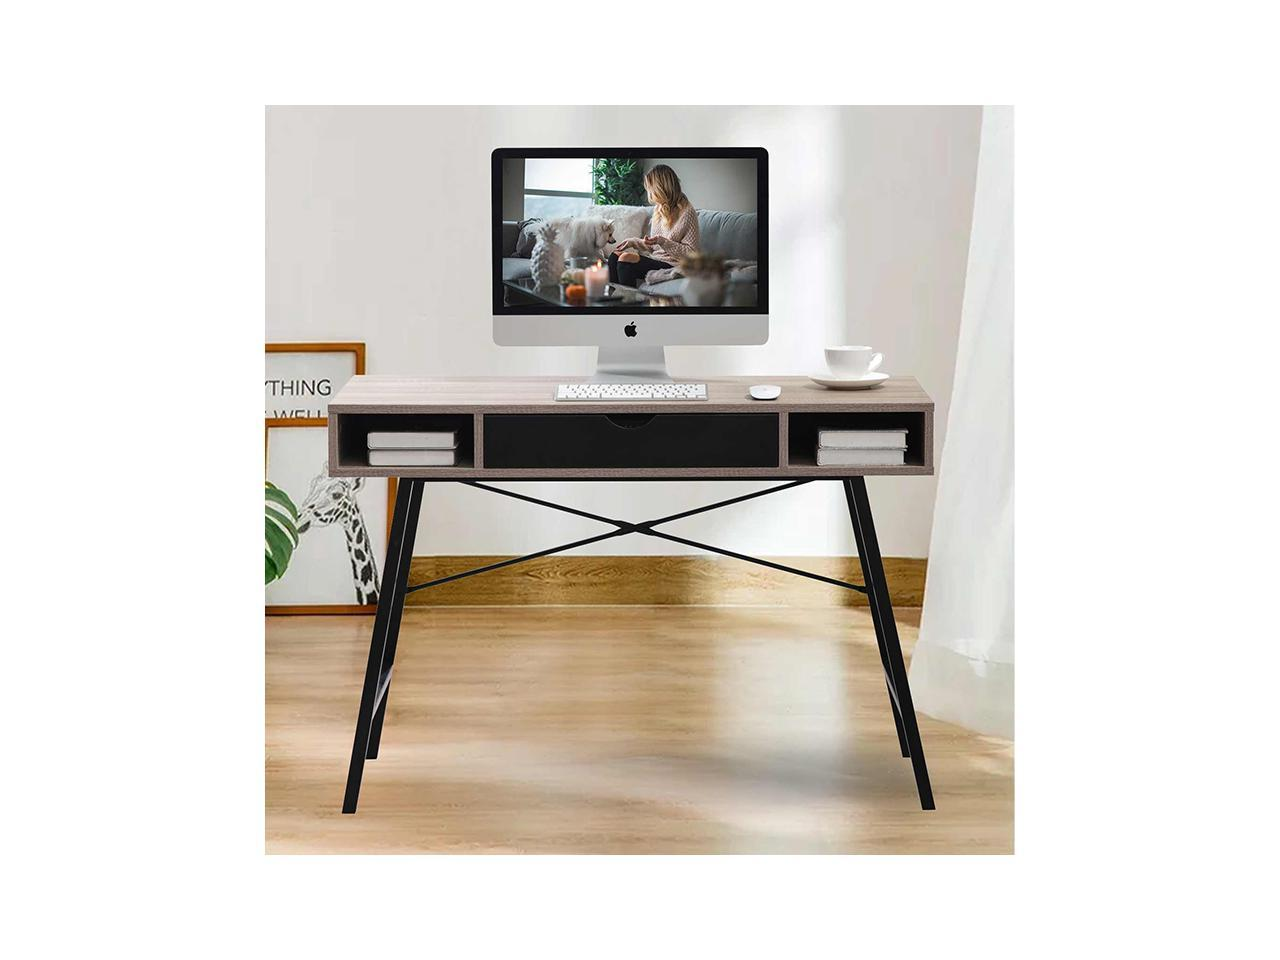 Bonzy Home 43 Inch Computer Desk with Drawer and Shelves